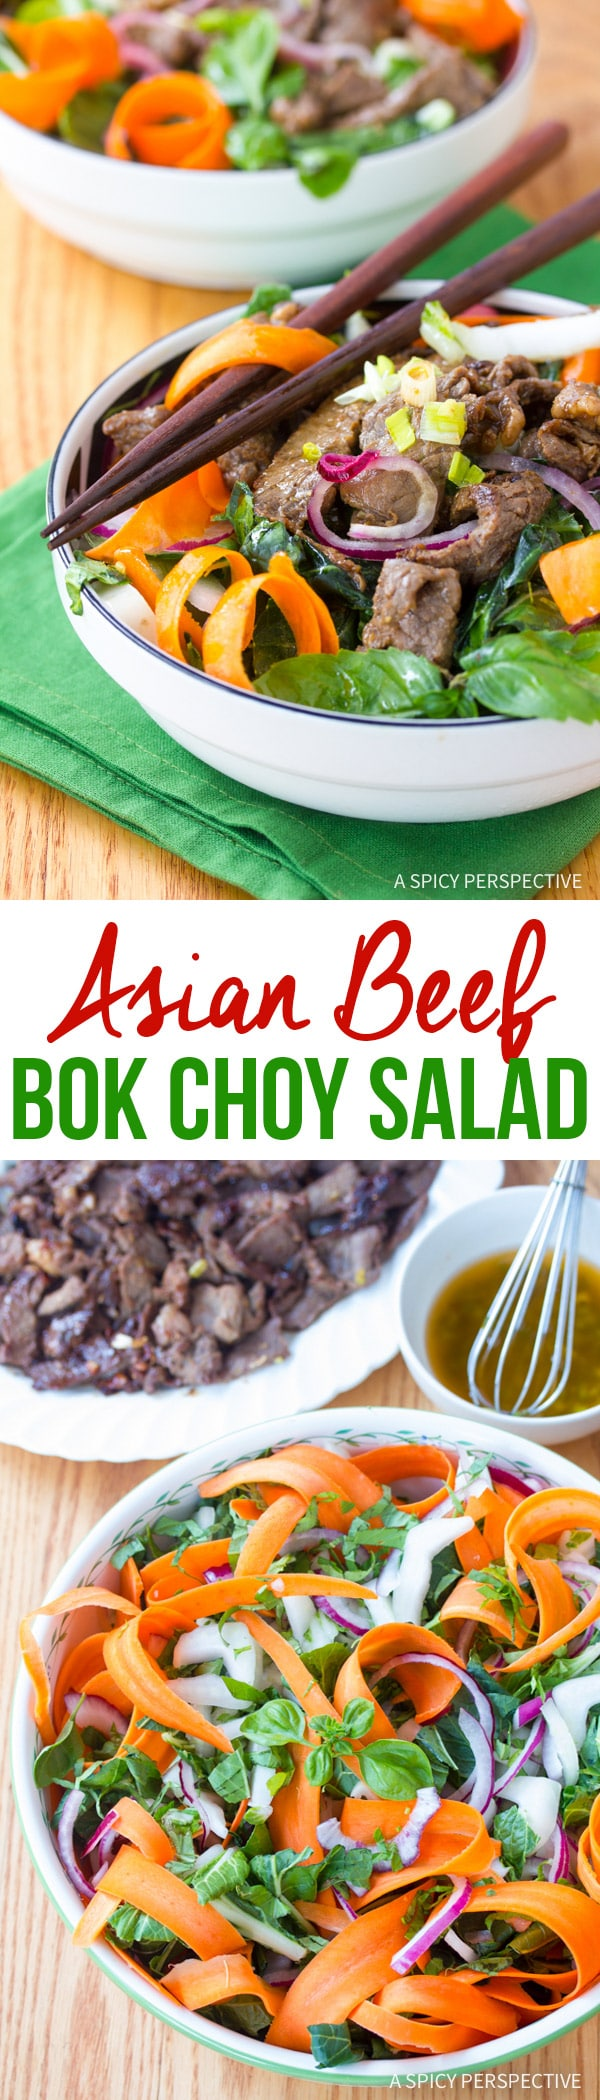 Zesty Asian Beef and Bok Choy Salad ( Low Carb & Low Fat!)